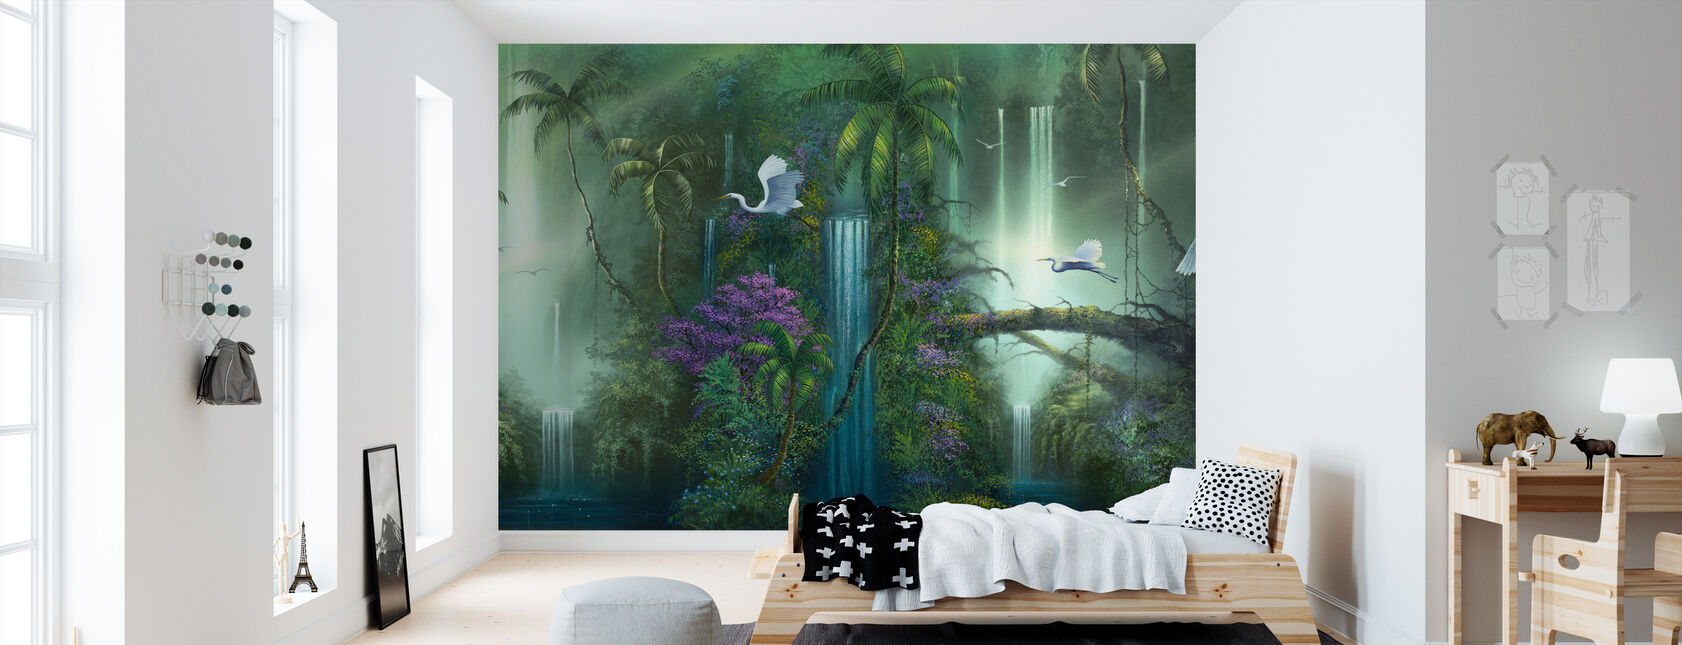 Waterfall Fantasy - Wallpaper - Kids Room